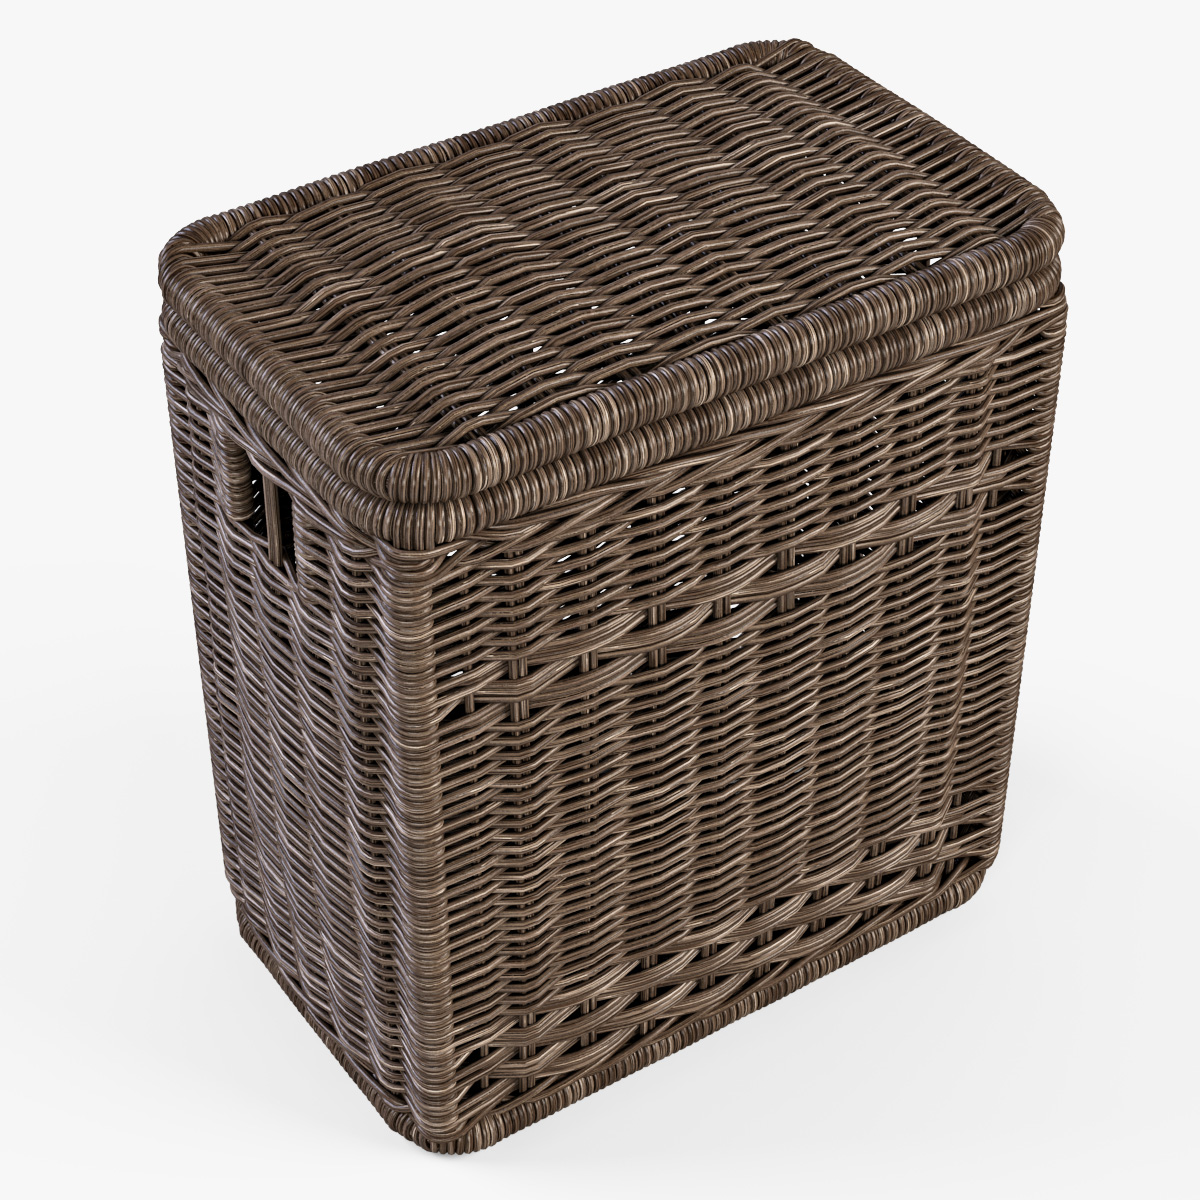 Wicker laundry hamper 08 brown color by markelos 3docean - Rattan laundry hamper ...